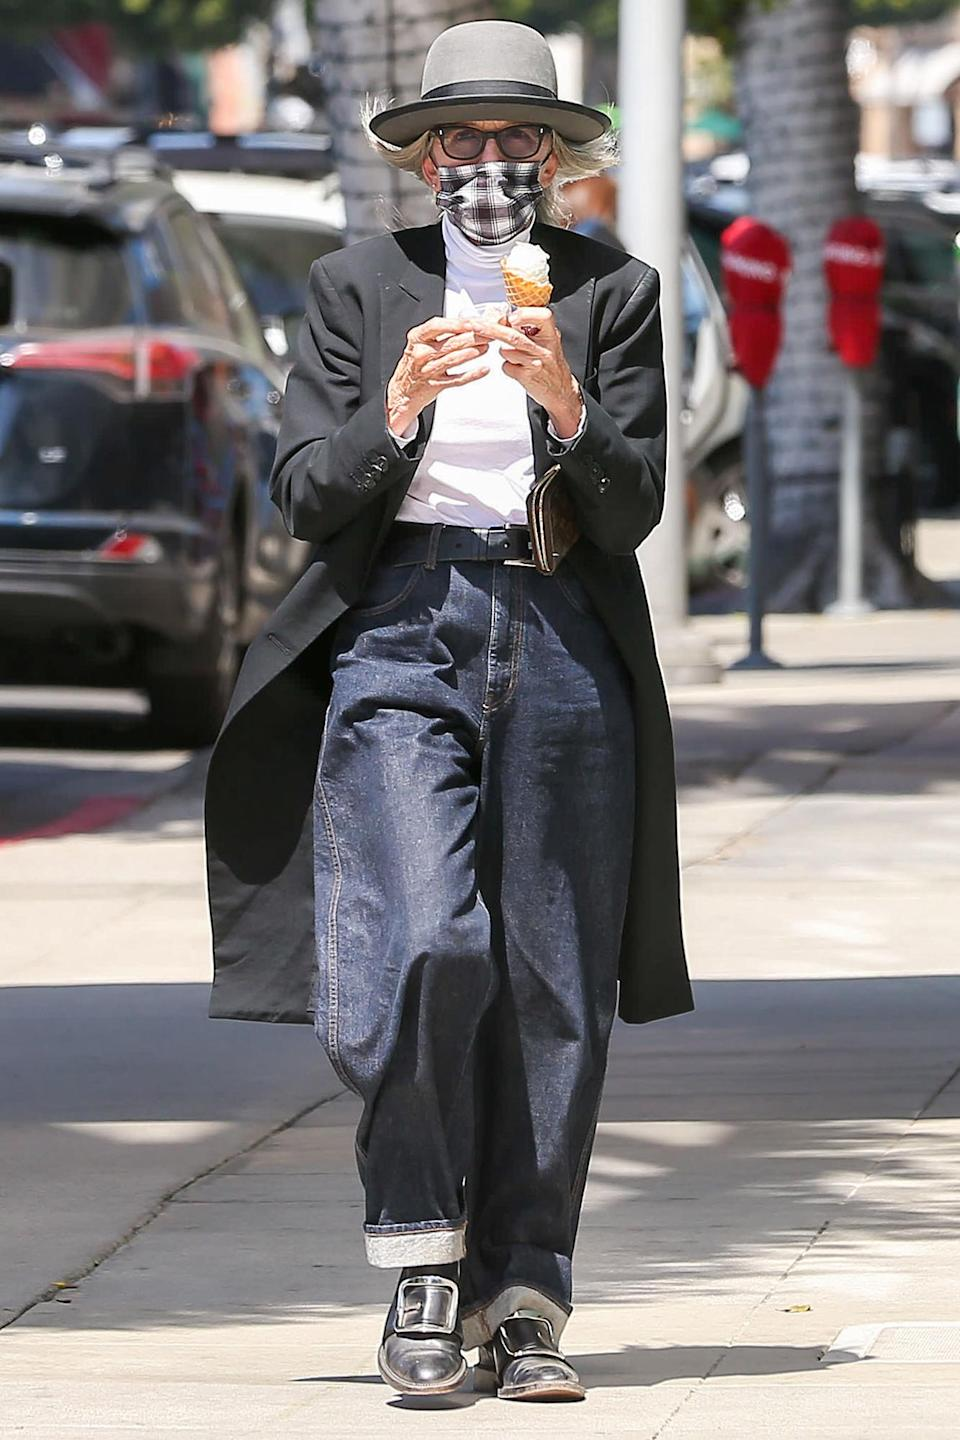 <p>Diane Keaton was spotted enjoying an ice cream cone in Los Angeles.</p>